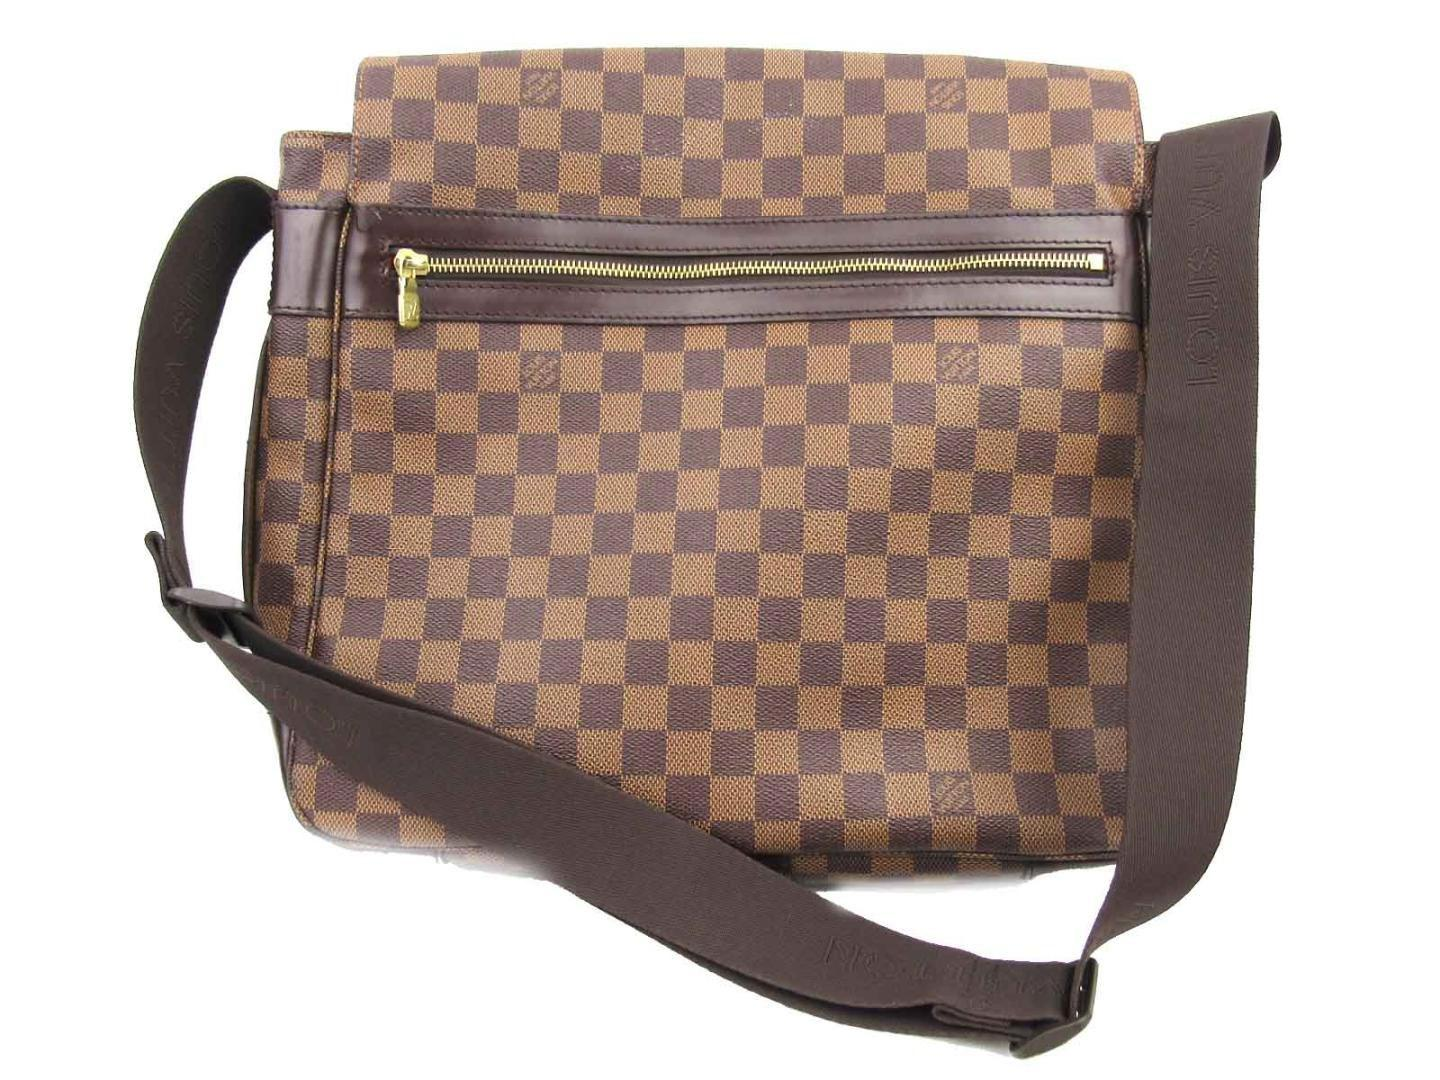 1a42a8777153 Lyst - Louis Vuitton Auth Bastille Shoulder Crossbody Bag N45258 ...